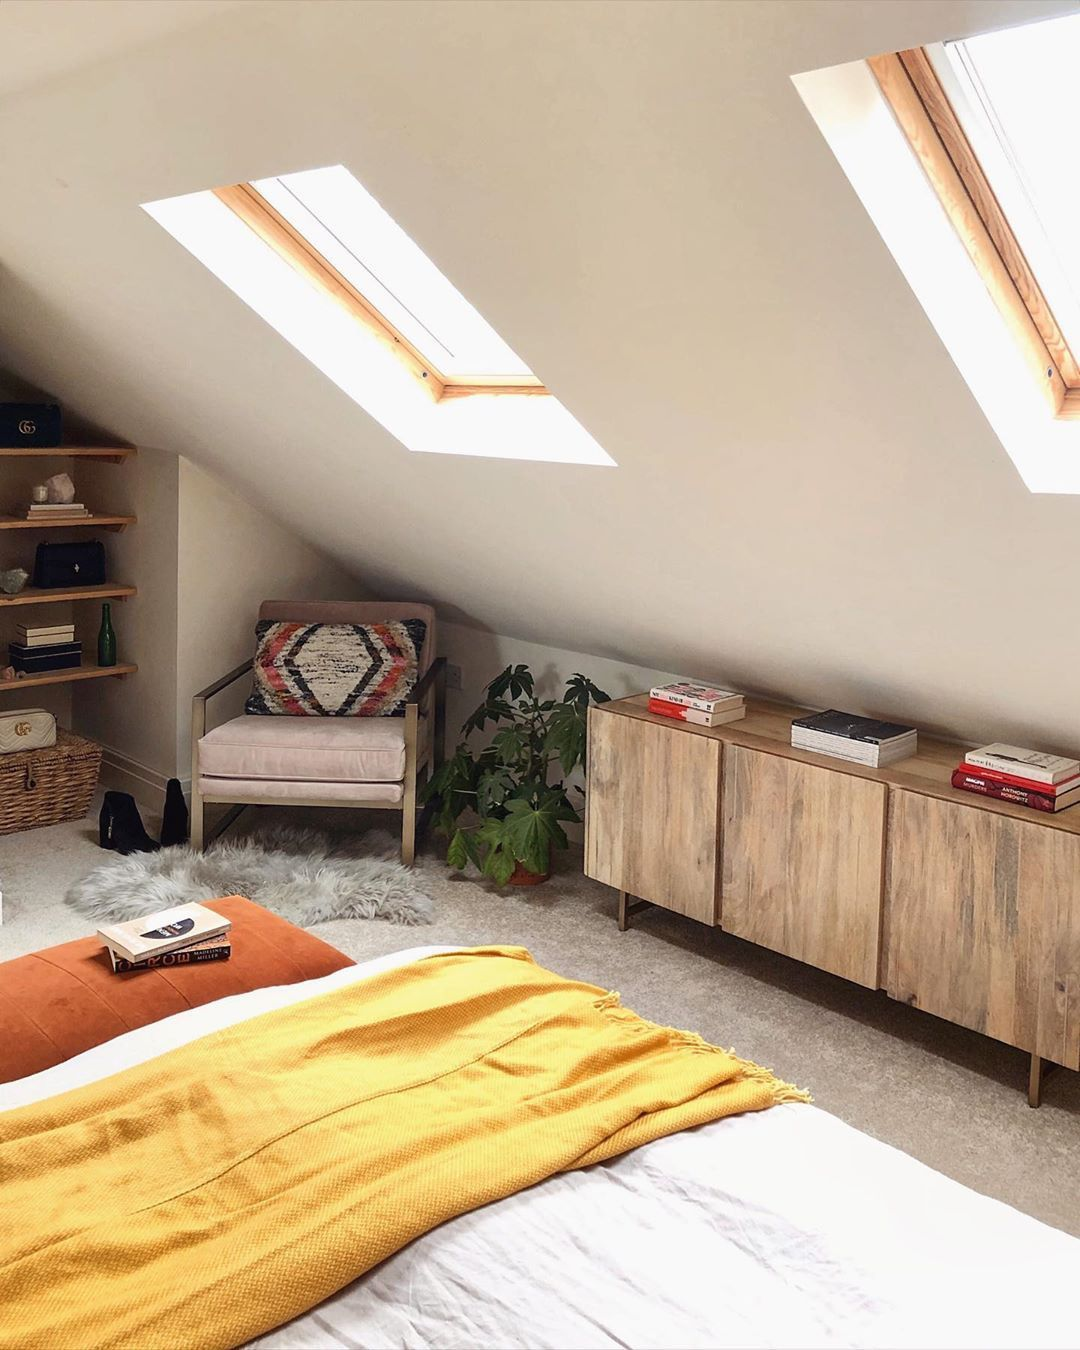 50 Cool Attic Bedroom Design Ideas Making Us Want To Move Upstairs Slanted Ceiling Bedroom Low Ceiling Bedroom Sloped Ceiling Bedroom